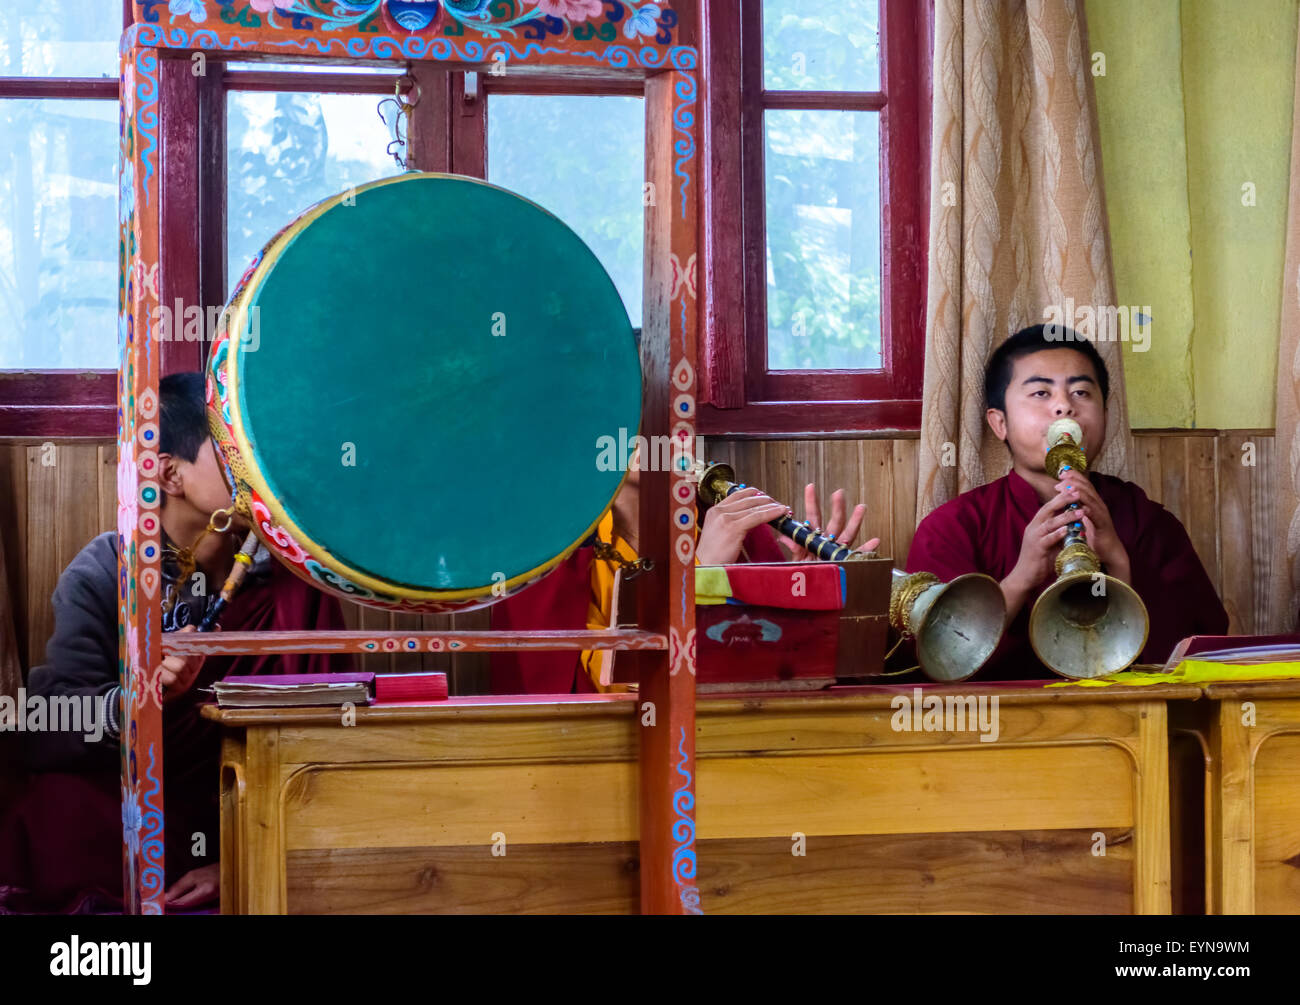 Buddhist priests, Lamas, praying inside a monastery in India, playing traditional flute, gong with copy space - Stock Image